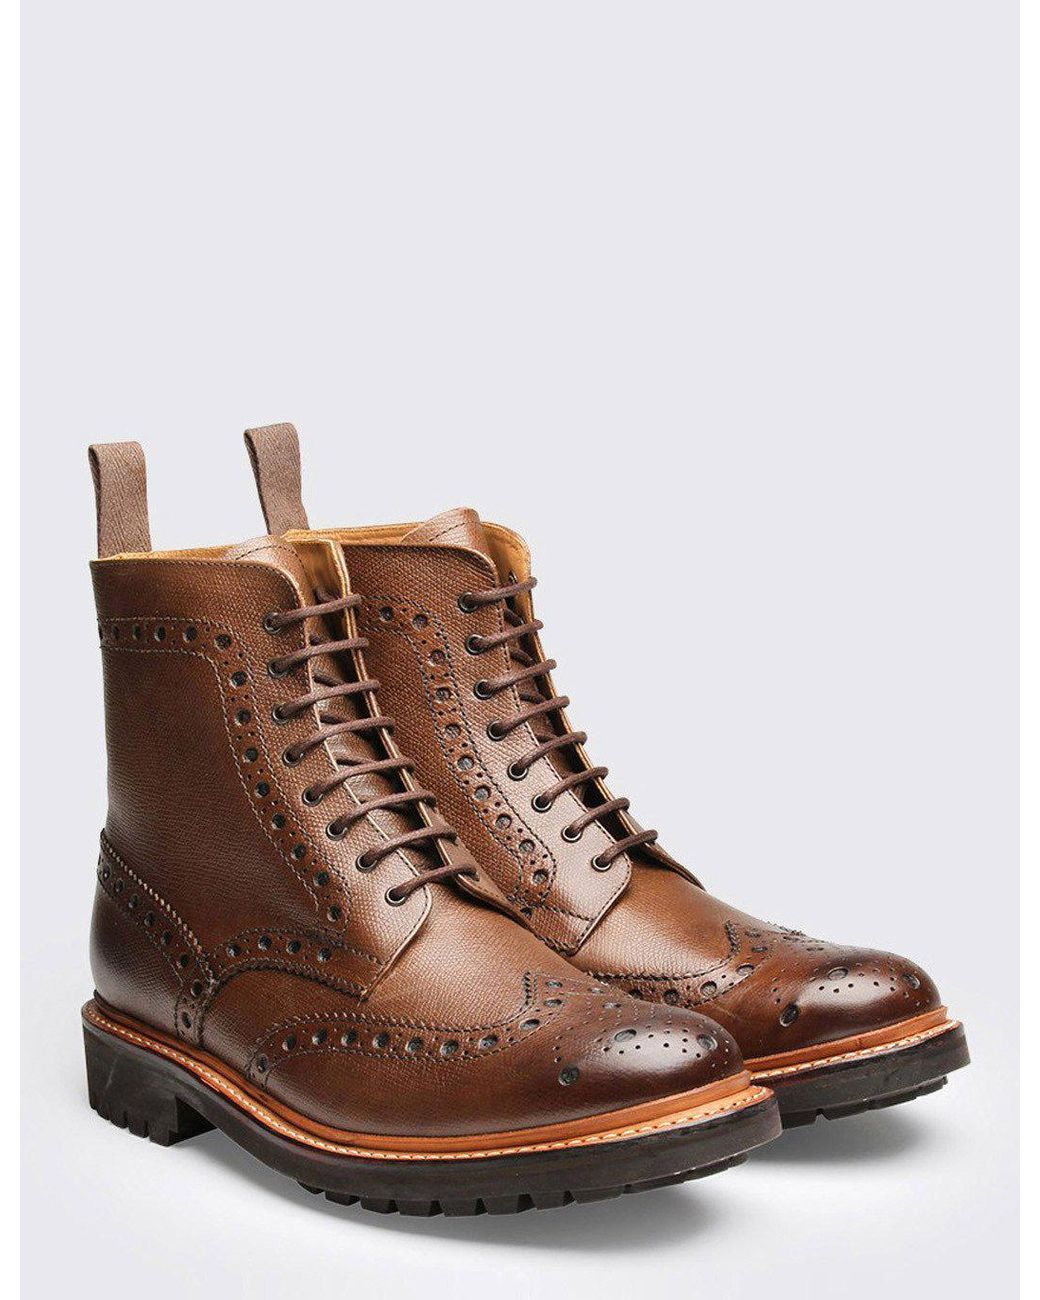 4975b623275 Men's Brown Fred Brogue Boot (commando Sole) | ├ MY WISH LIST ...